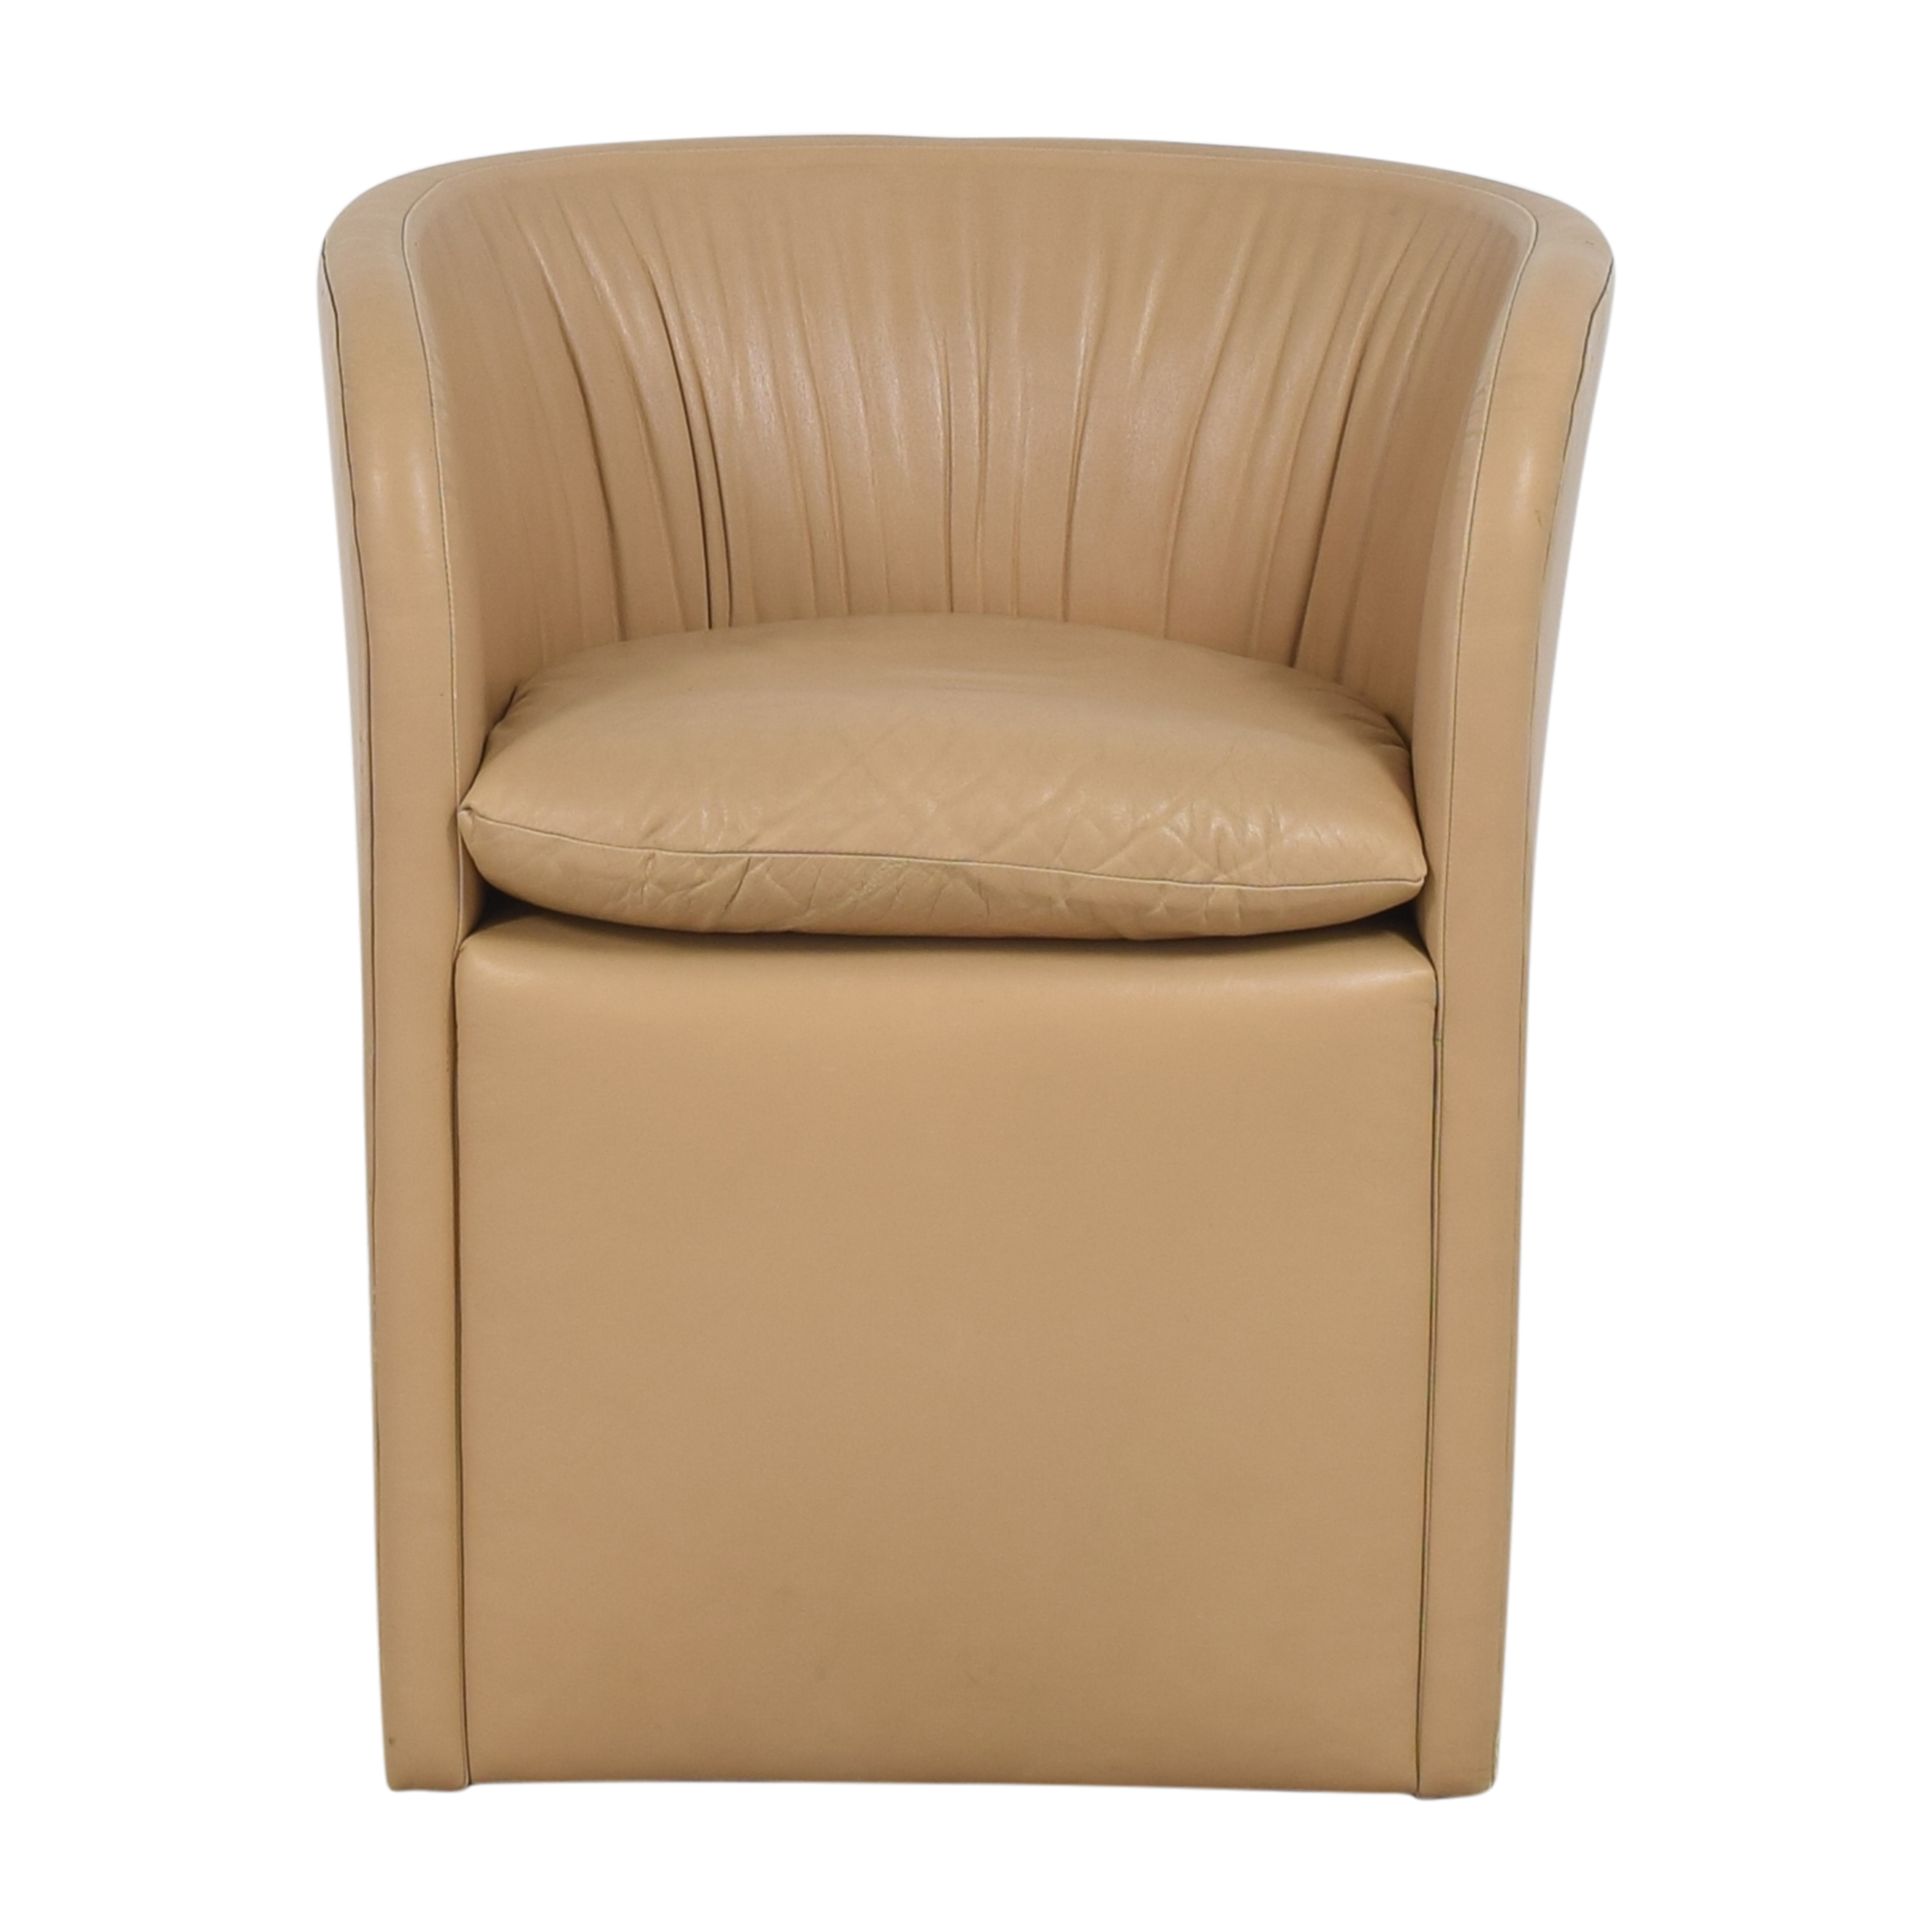 David Edward David Edward by John Saladino Barrel Chair nj